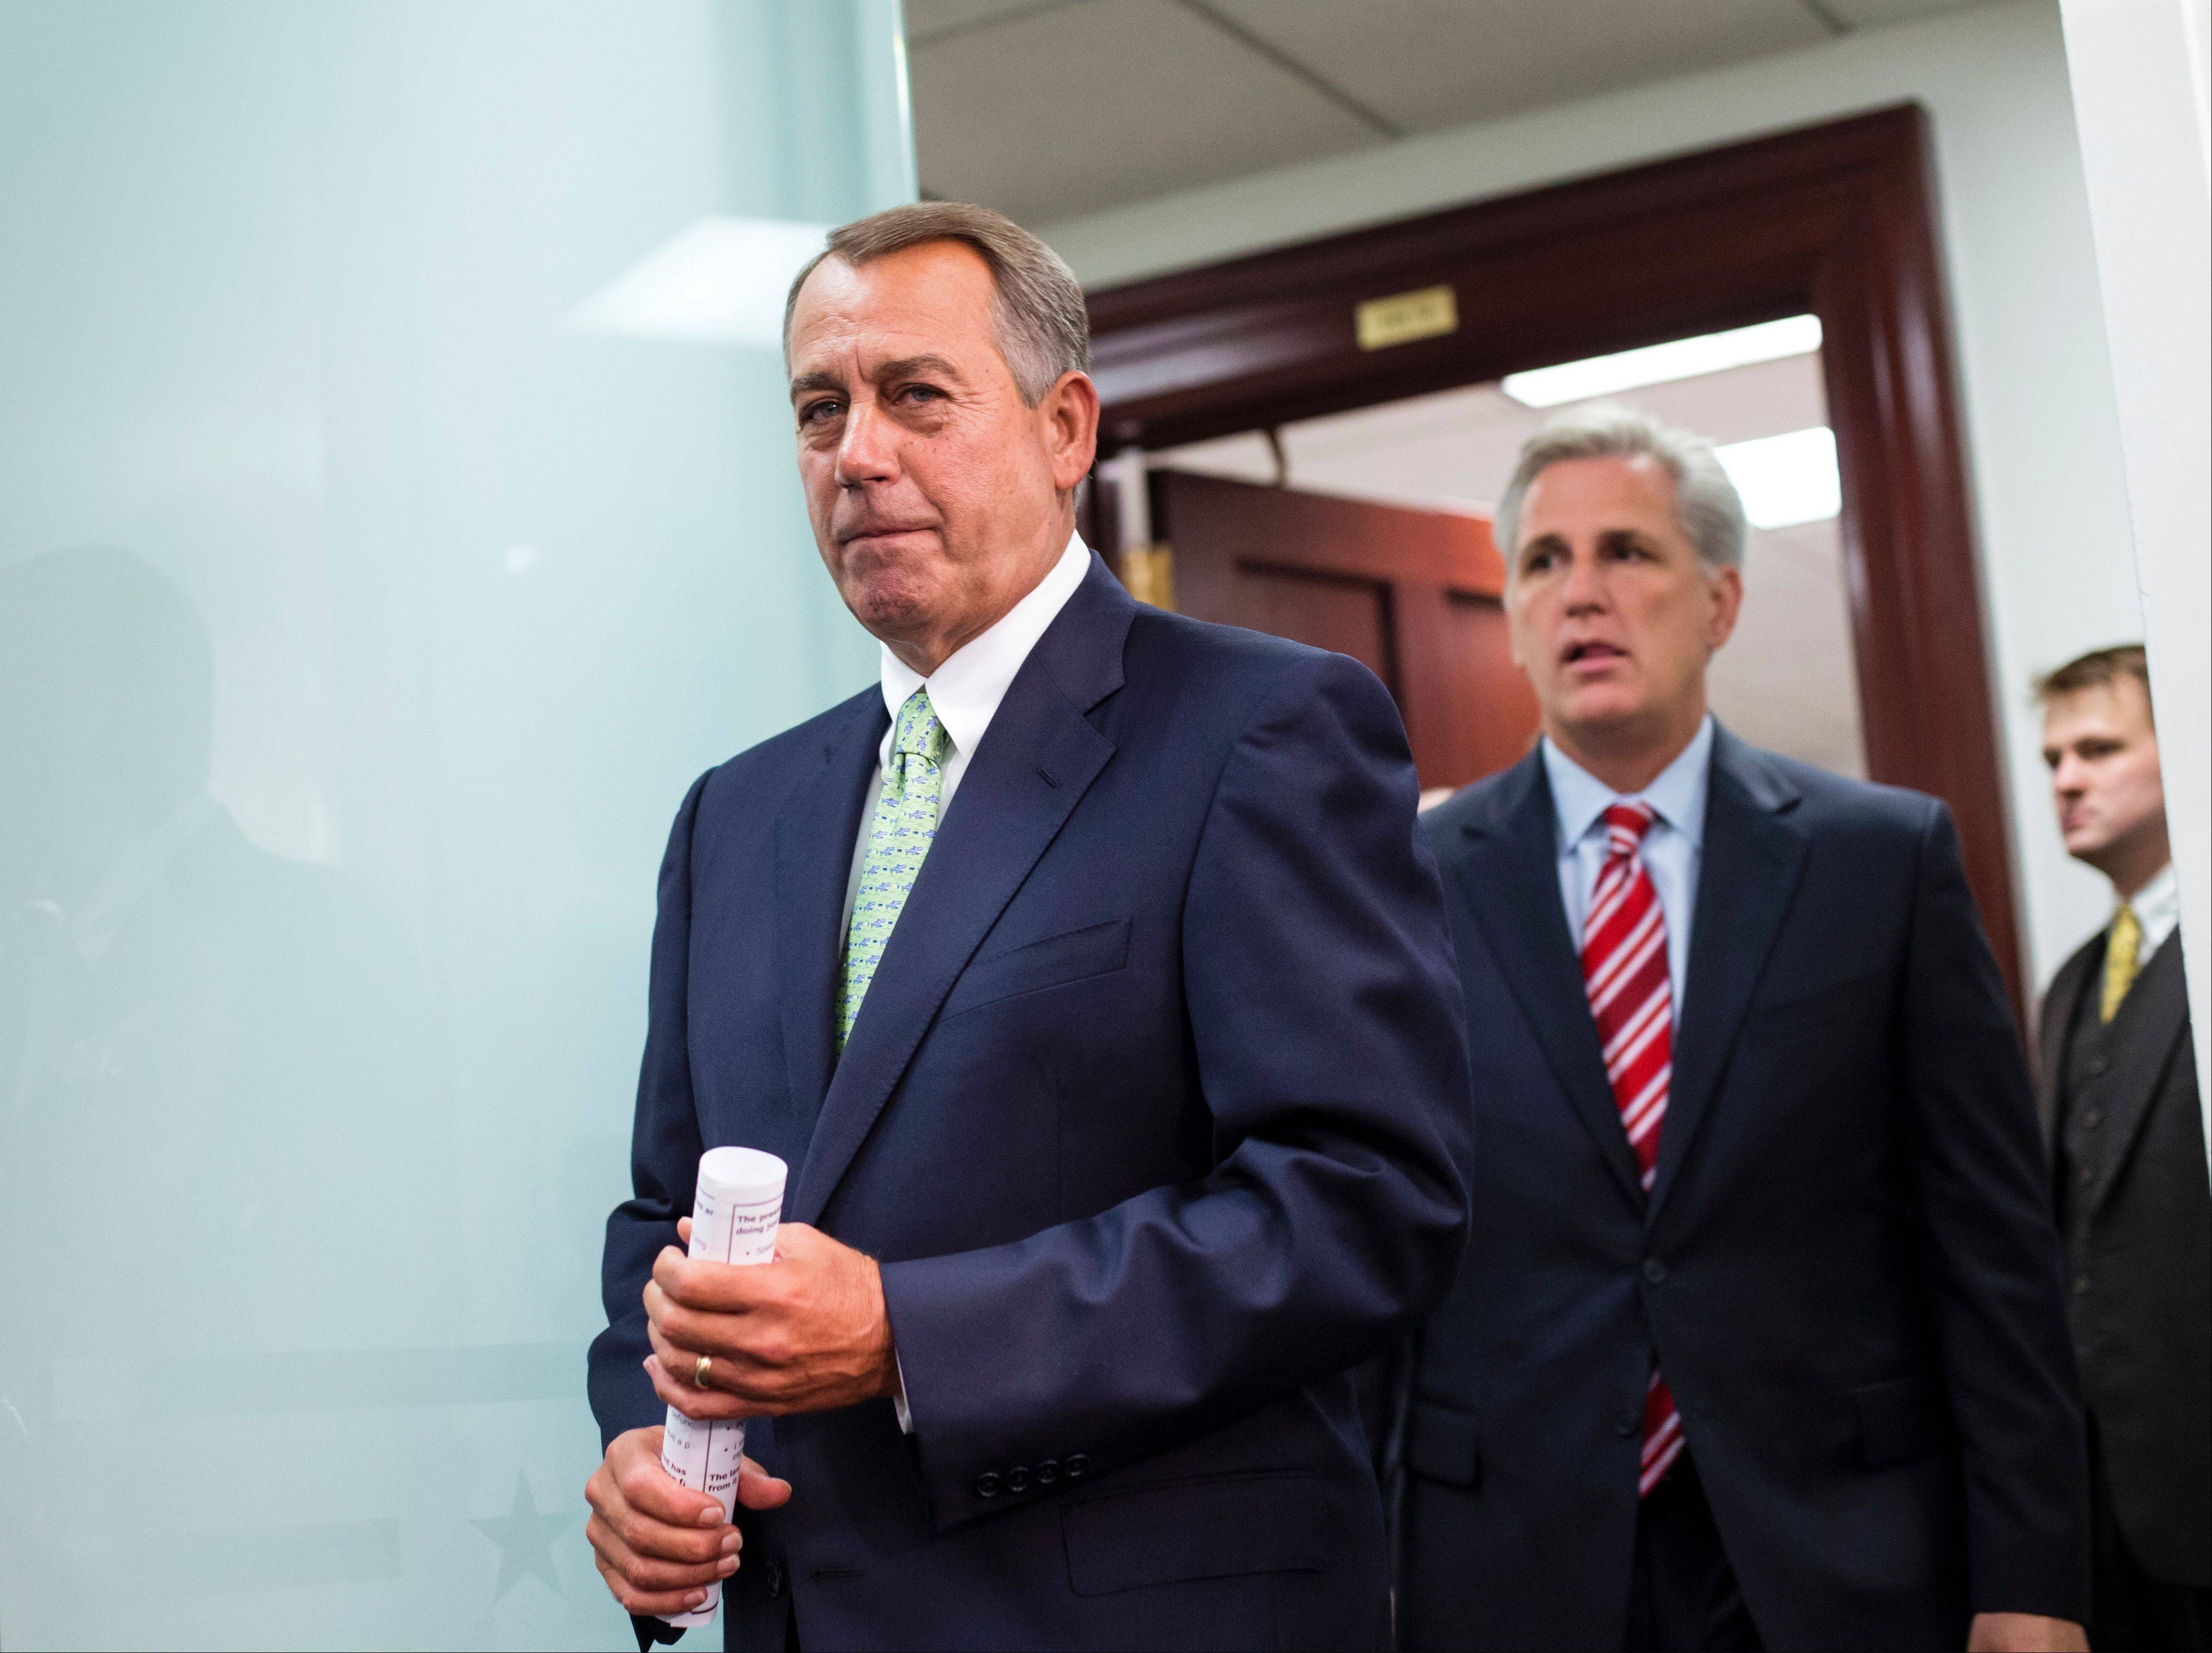 Speaker of the House John Boehner, R-Ohio, and House Republican leaders emerge from a closed-door strategy session at the Capitol, Wednesday, Sept. 18, 2013. The GOP-controlled House is cruising toward a vote to gut President Barack Obama's health care plan as part of a temporary funding bill to prevent a partial government shutdown on Oct. 1.